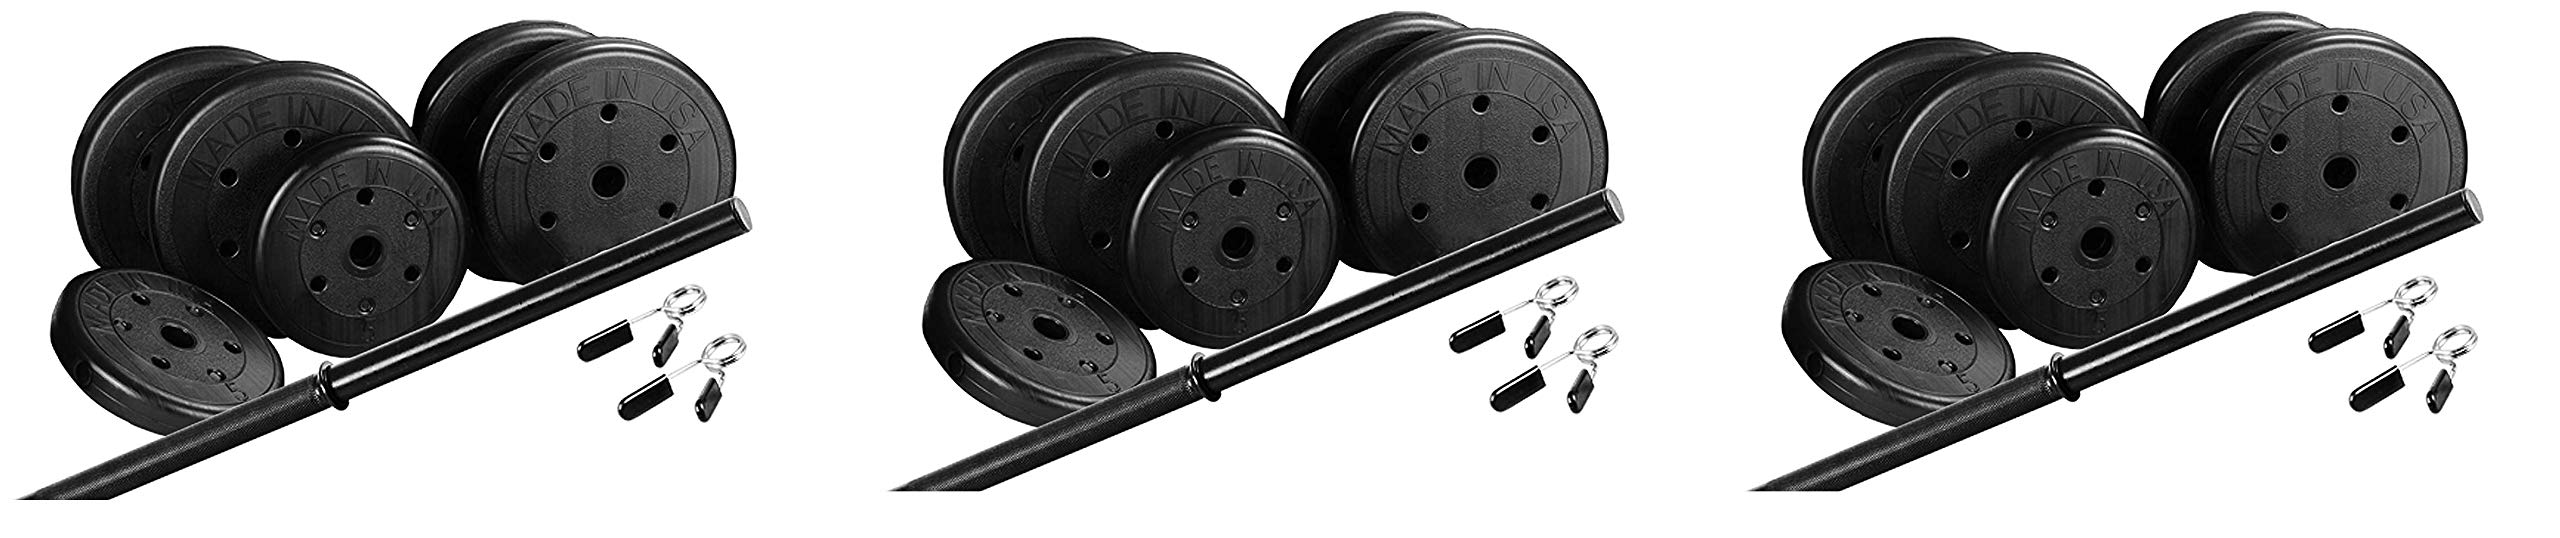 US Weight Duracast 55 lb. Barbell Weight Set with Two 5 lb. Weights, Four 10 lb. Weights, One 4 lb. Two-Piece Threaded Barbell Bar, Two Locking Spring Clips (Thrее Расk)